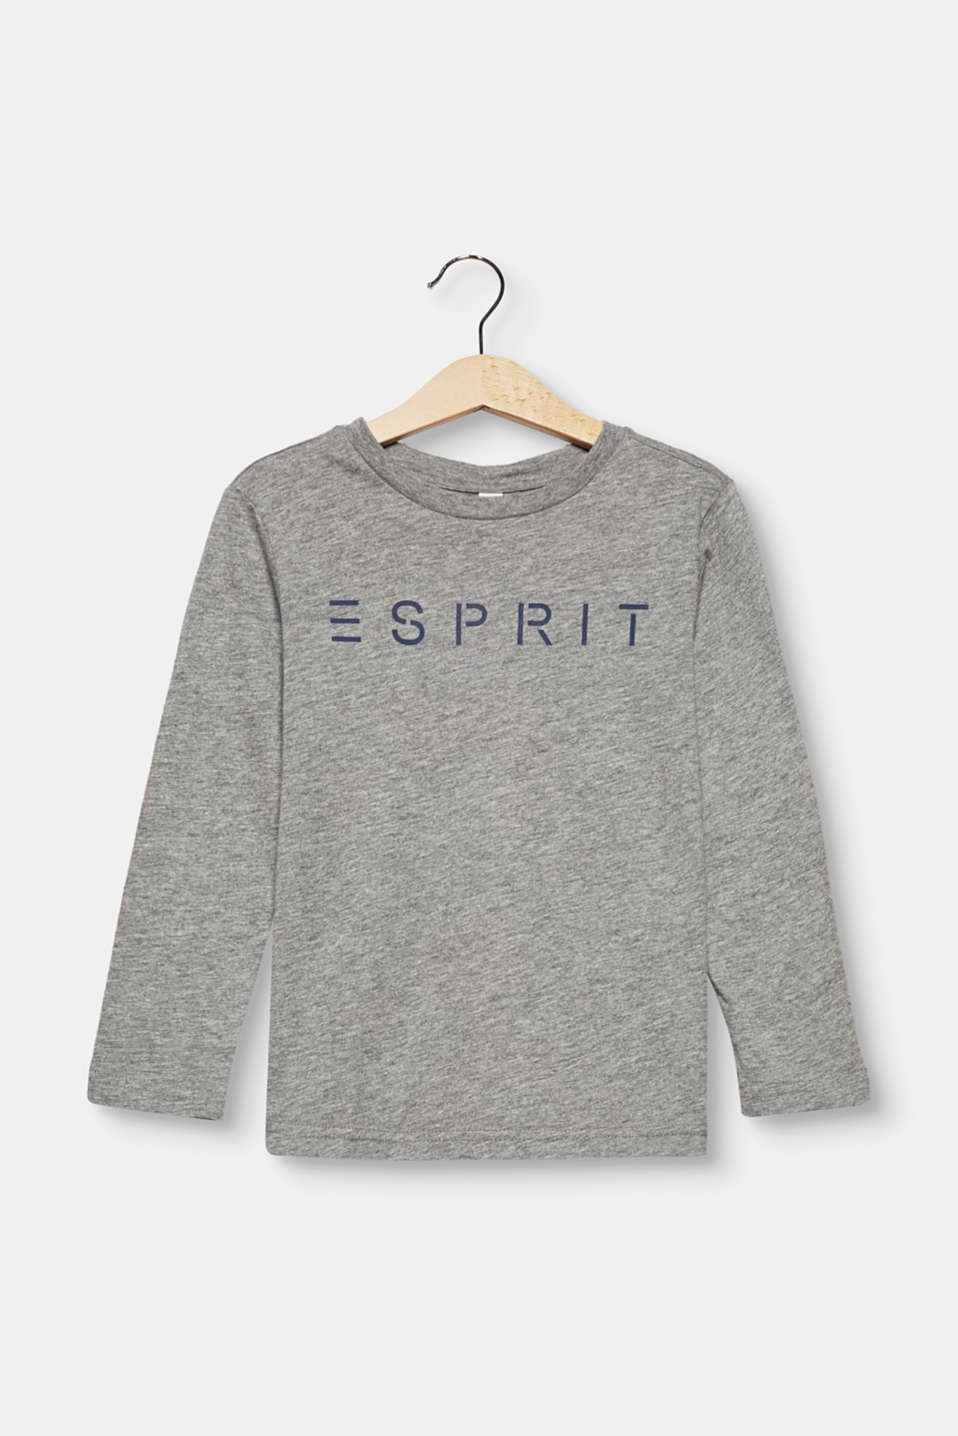 Esprit - Logo long sleeve top in melange jersey